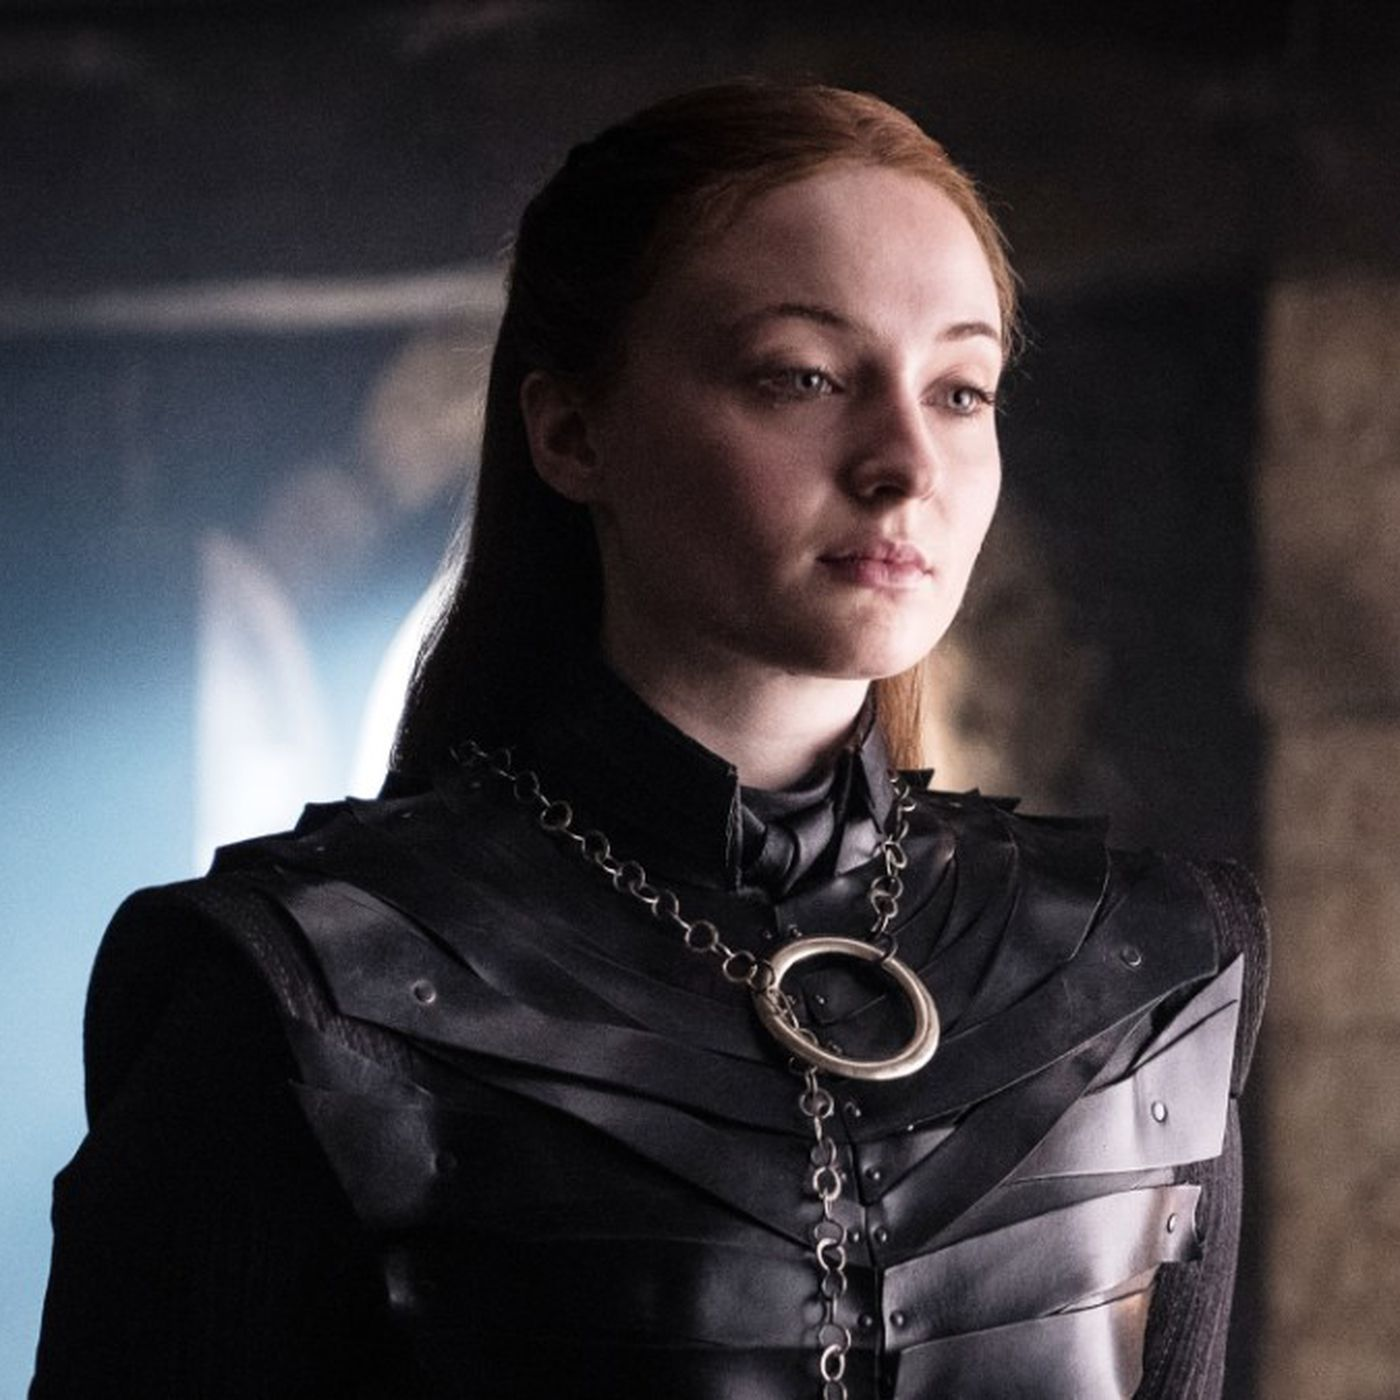 Game of Thrones' Sansa Stark, explained by her costumes - Vox